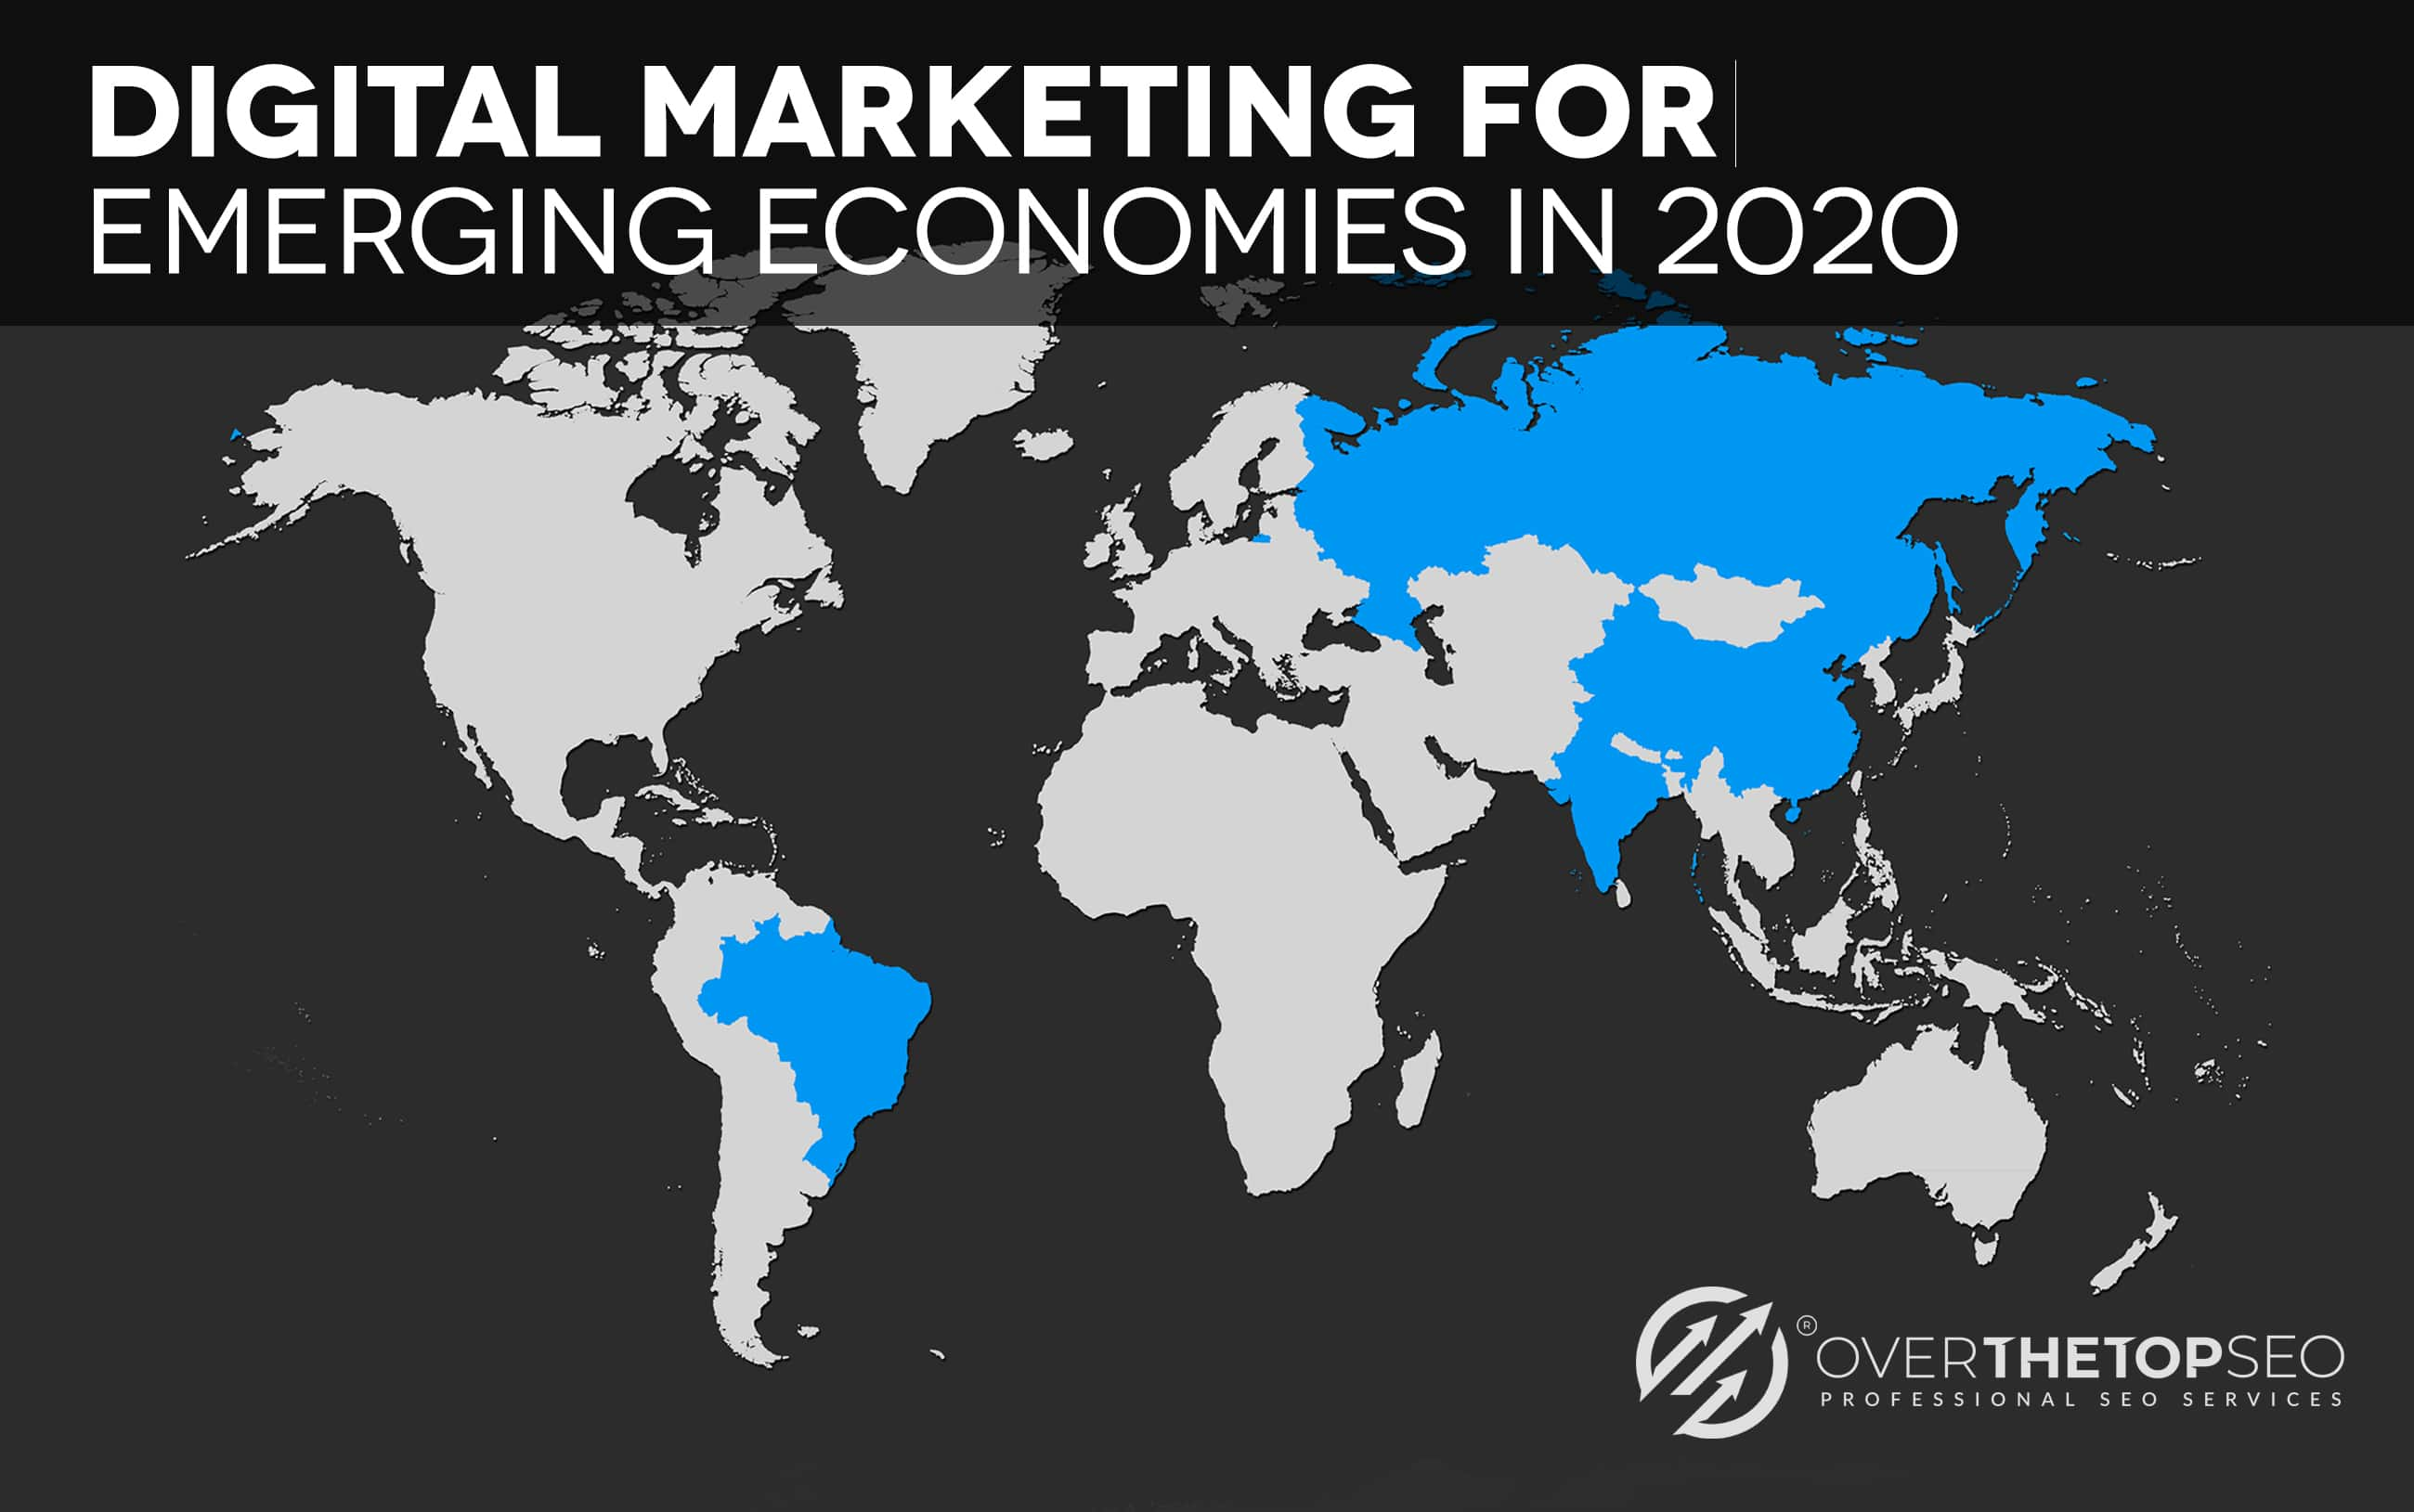 Digital Marketing for Emerging Economies in 2020